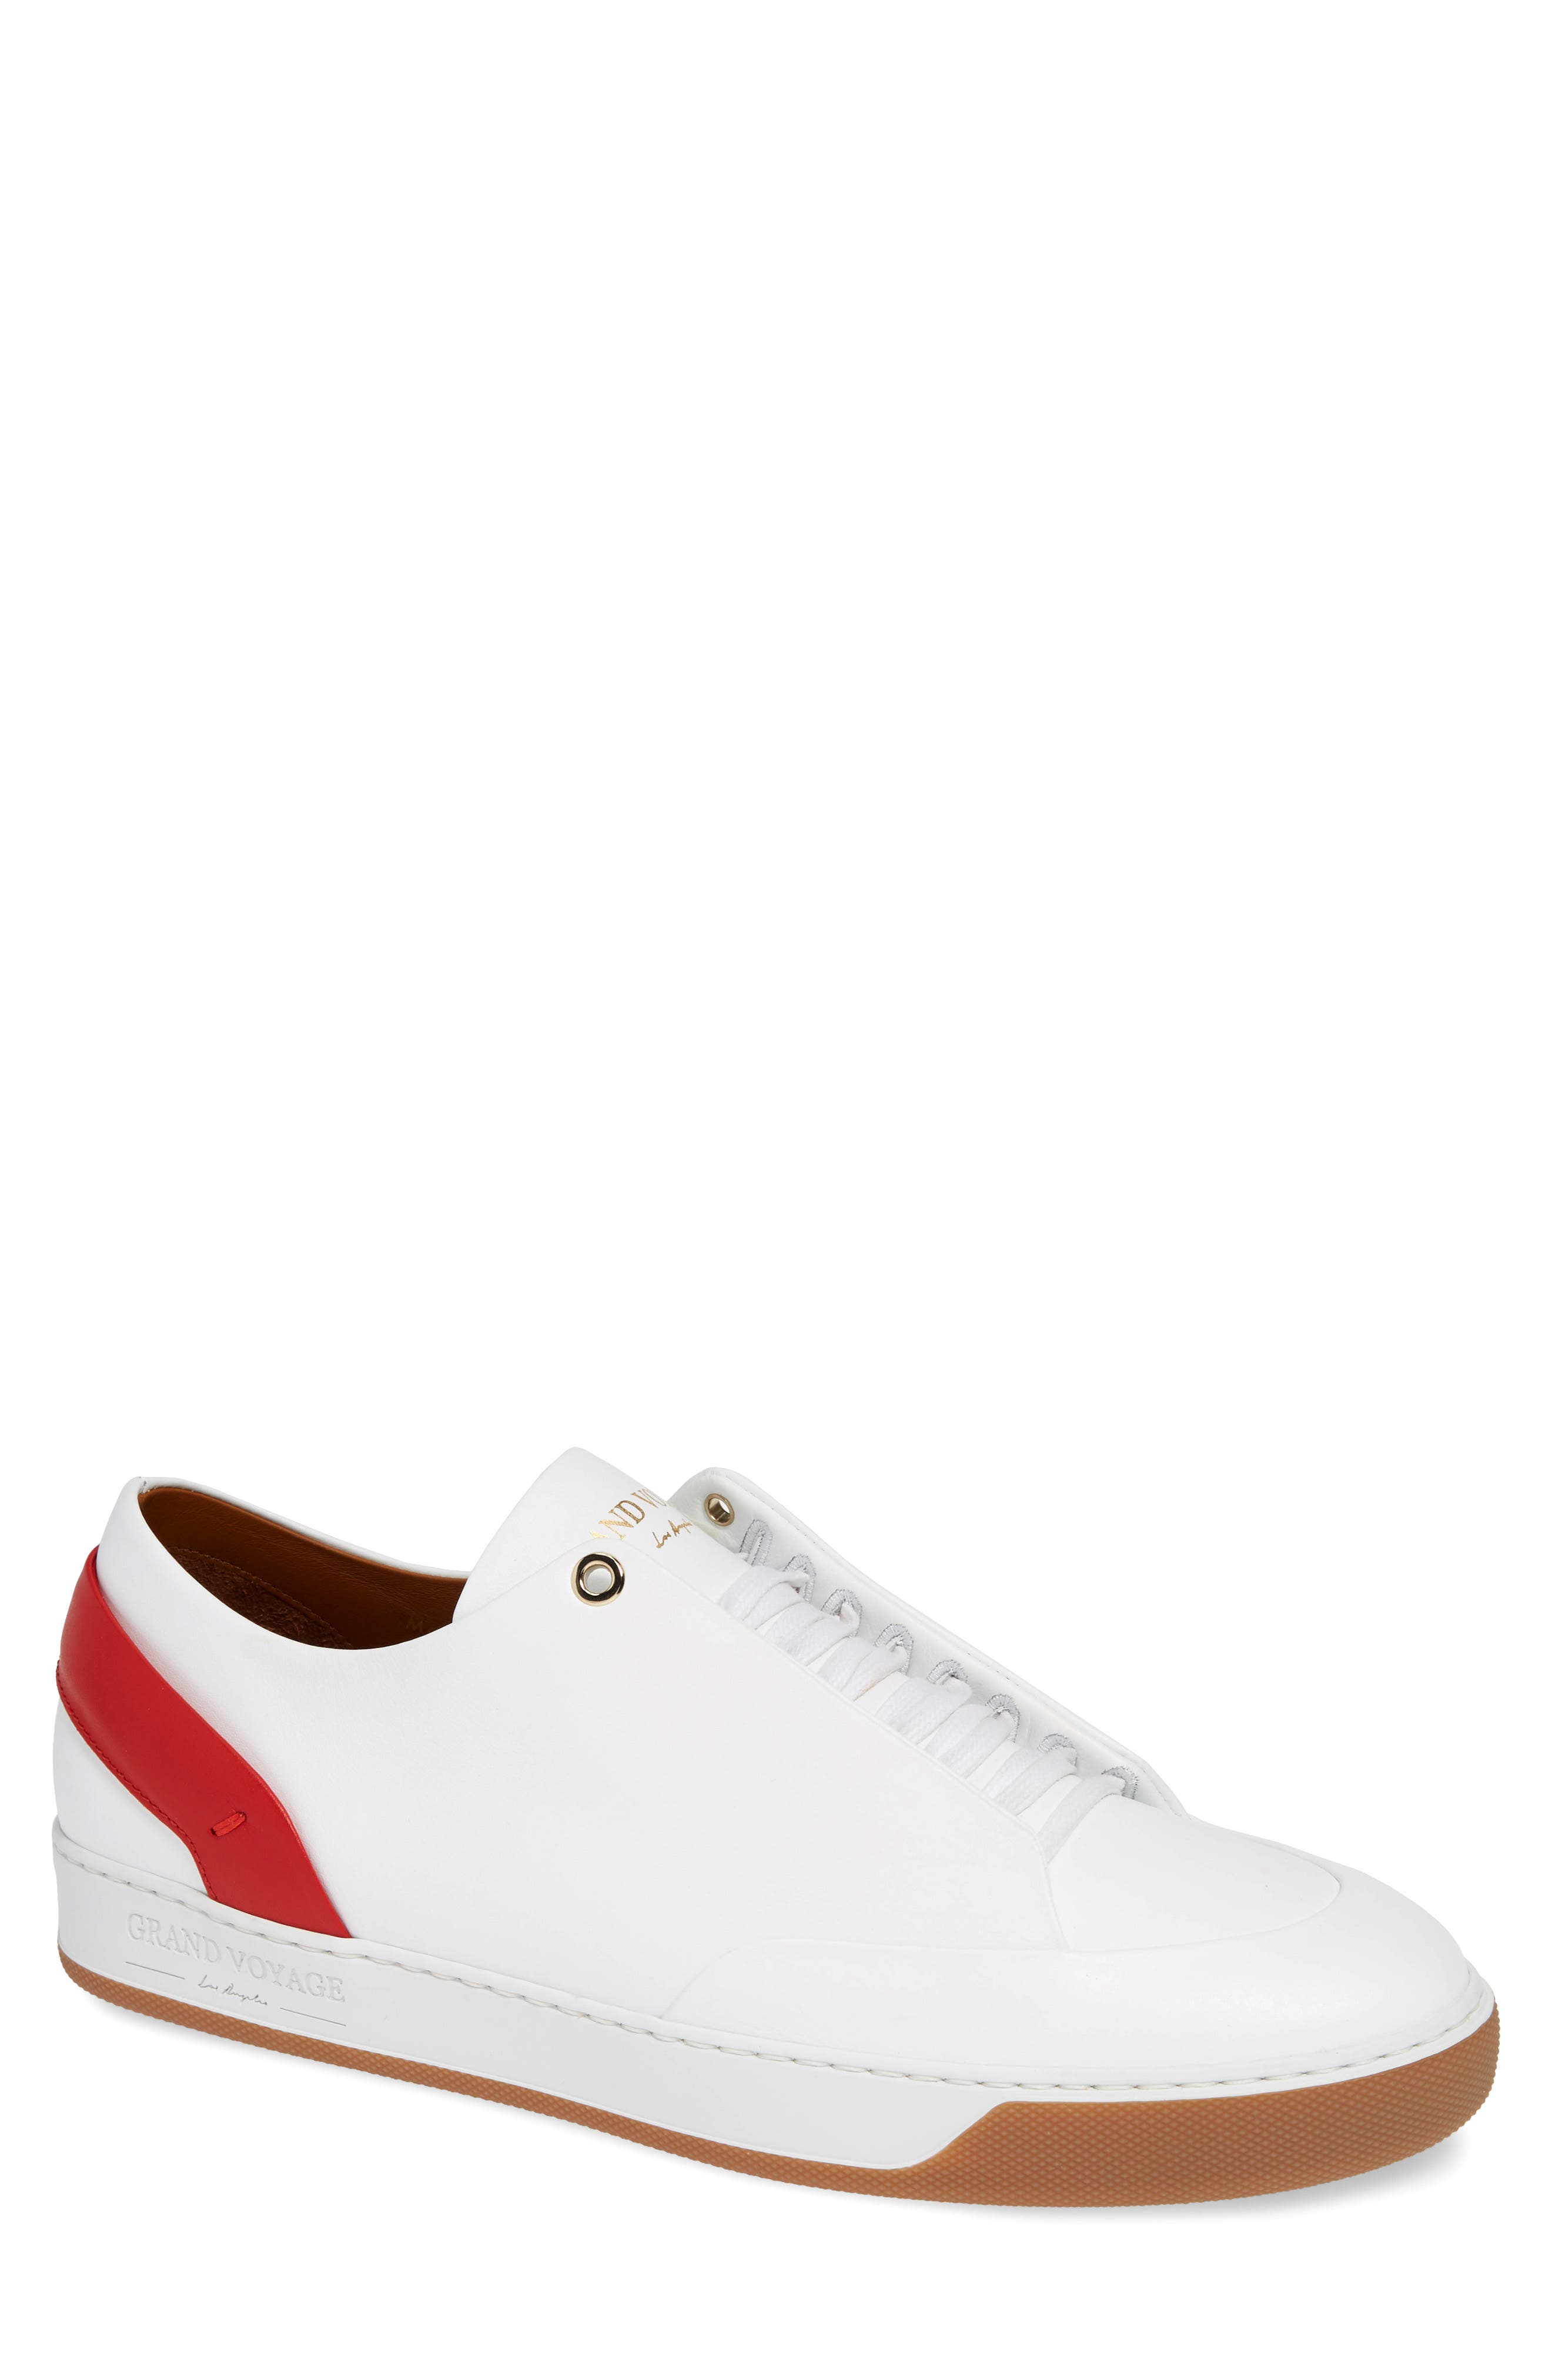 GRAND VOYAGE Avedon Sneaker in White/ Red/ Gum